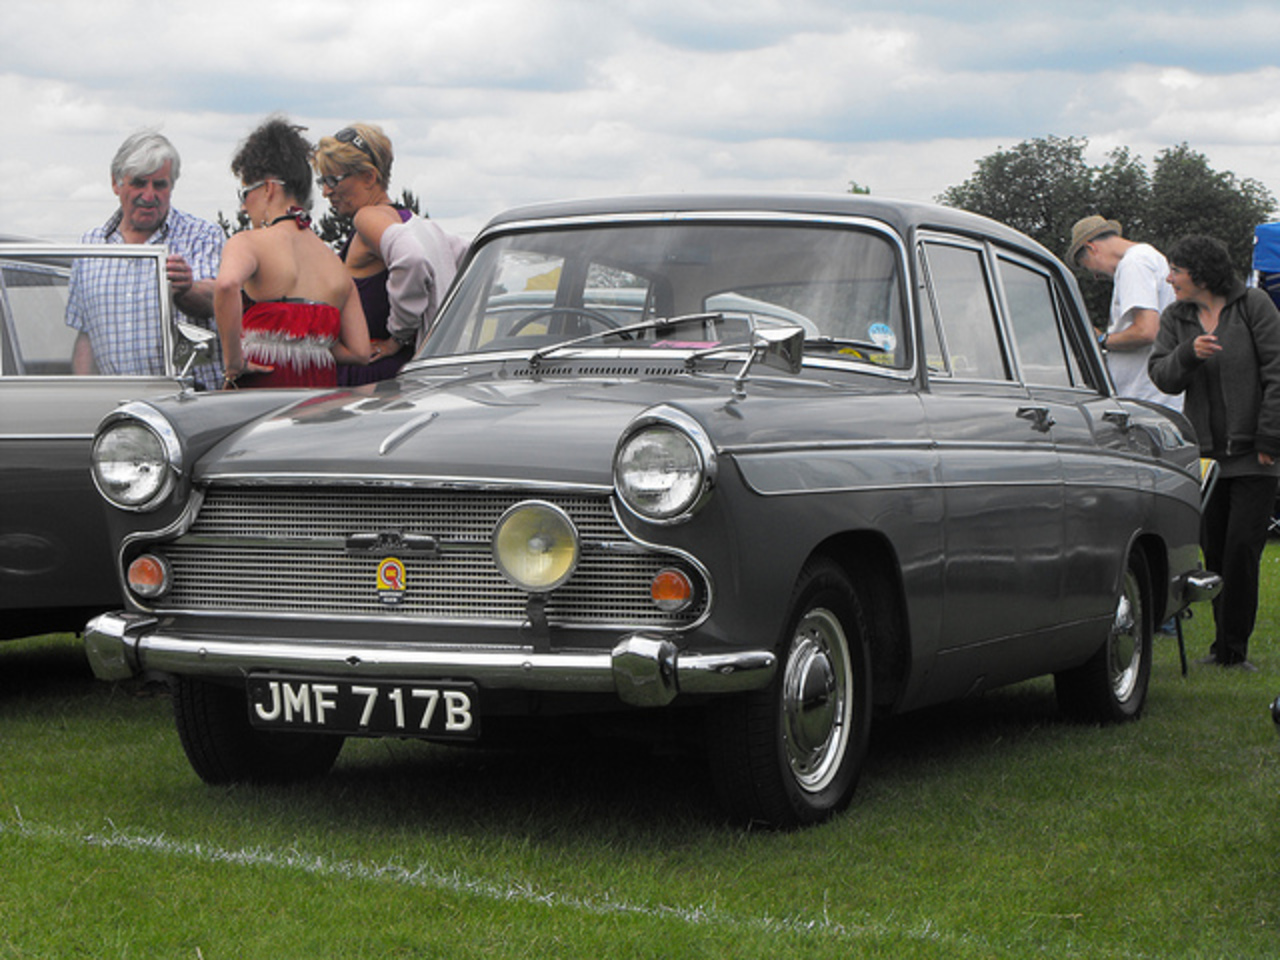 Flickr: The AUSTIN CAMBRIDGE & MORRIS OXFORD GROUP / BMC FARINAS Pool